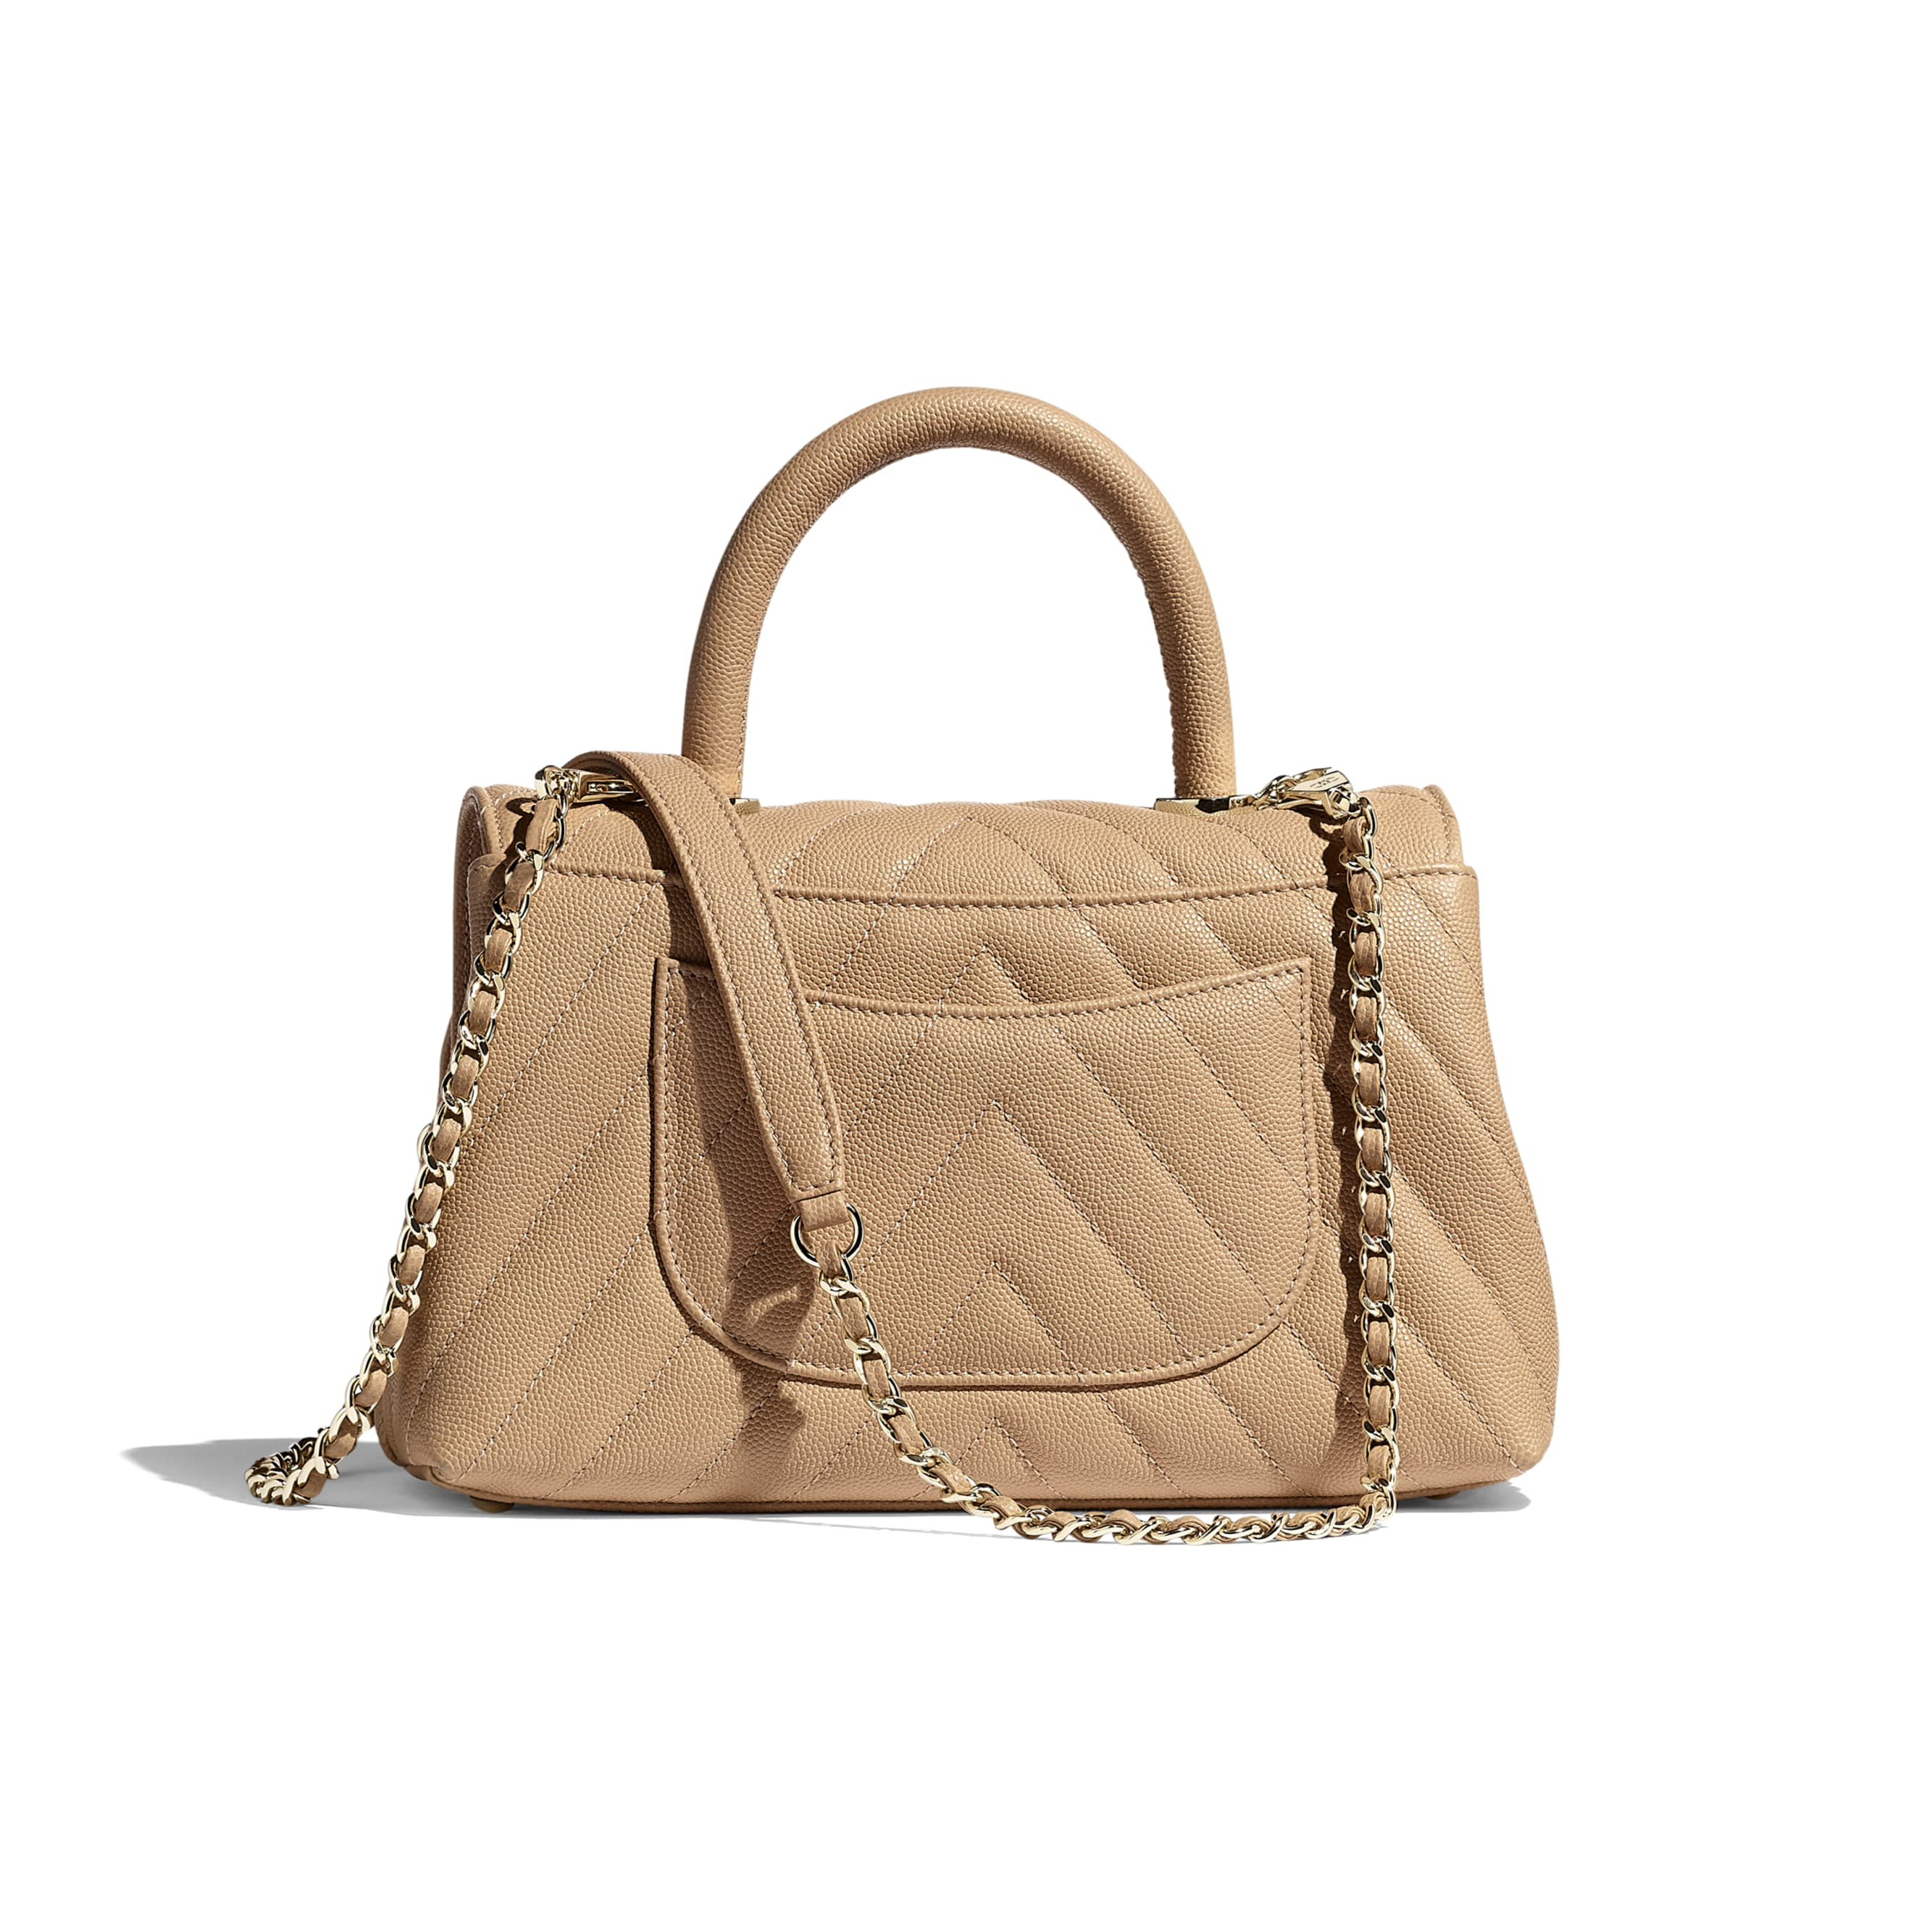 Small Flap Bag with Top Handle - Beige - Grained Calfskin & Gold-Tone Metal - CHANEL - Alternative view - see standard sized version